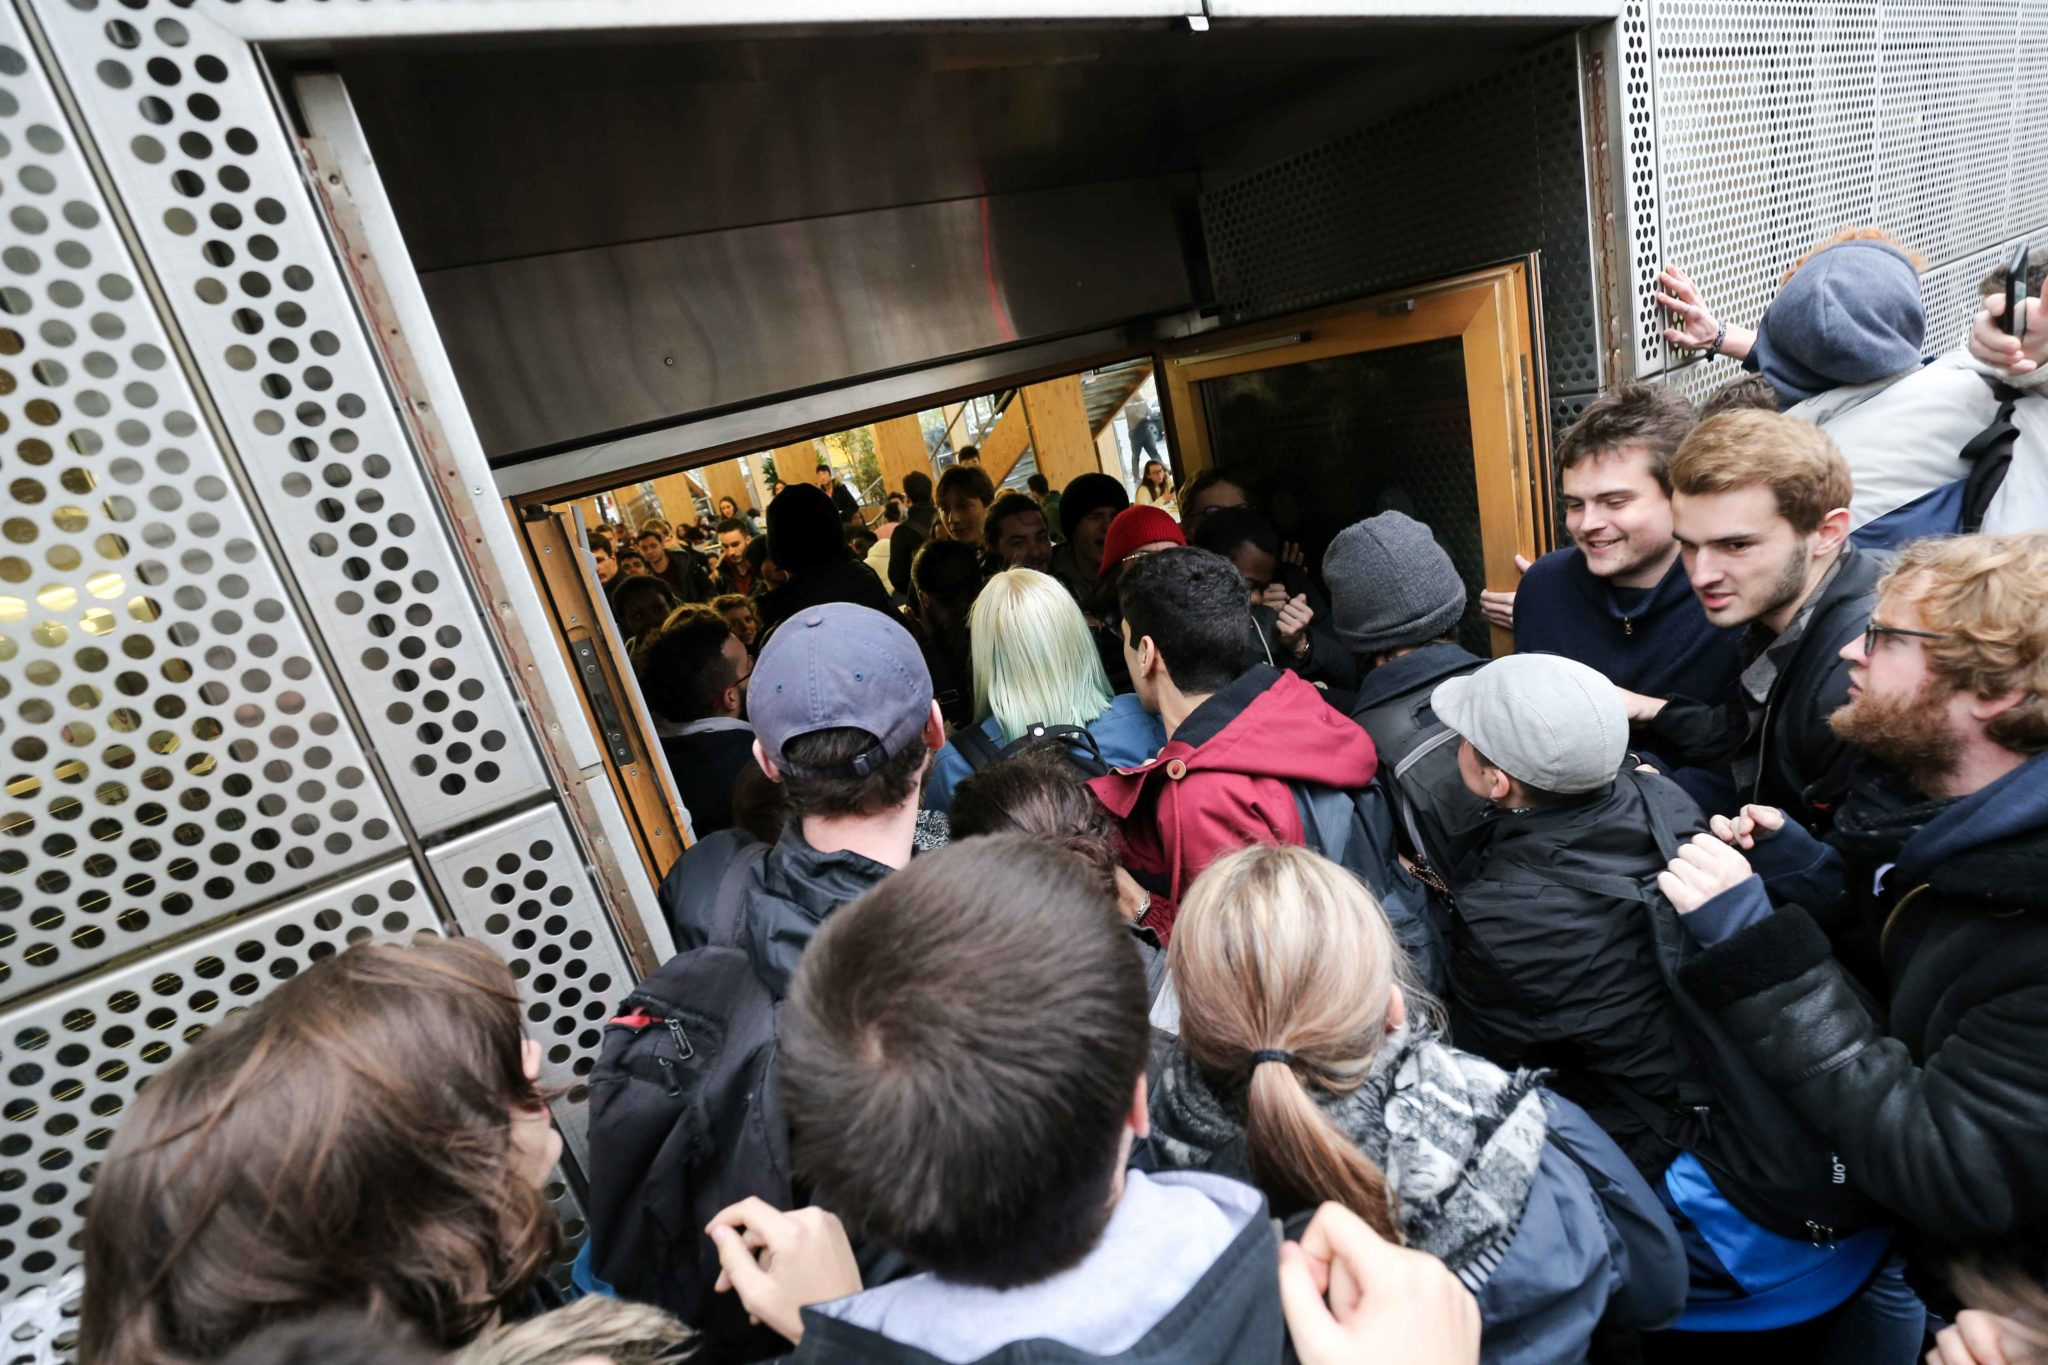 French students try to break down the entrance of the University restaurant near the University Paris Diderot as they demonstrate against their precariousness in Paris, on November 26, 2019, after the suicide attempt of a 22-year-old student by immolation